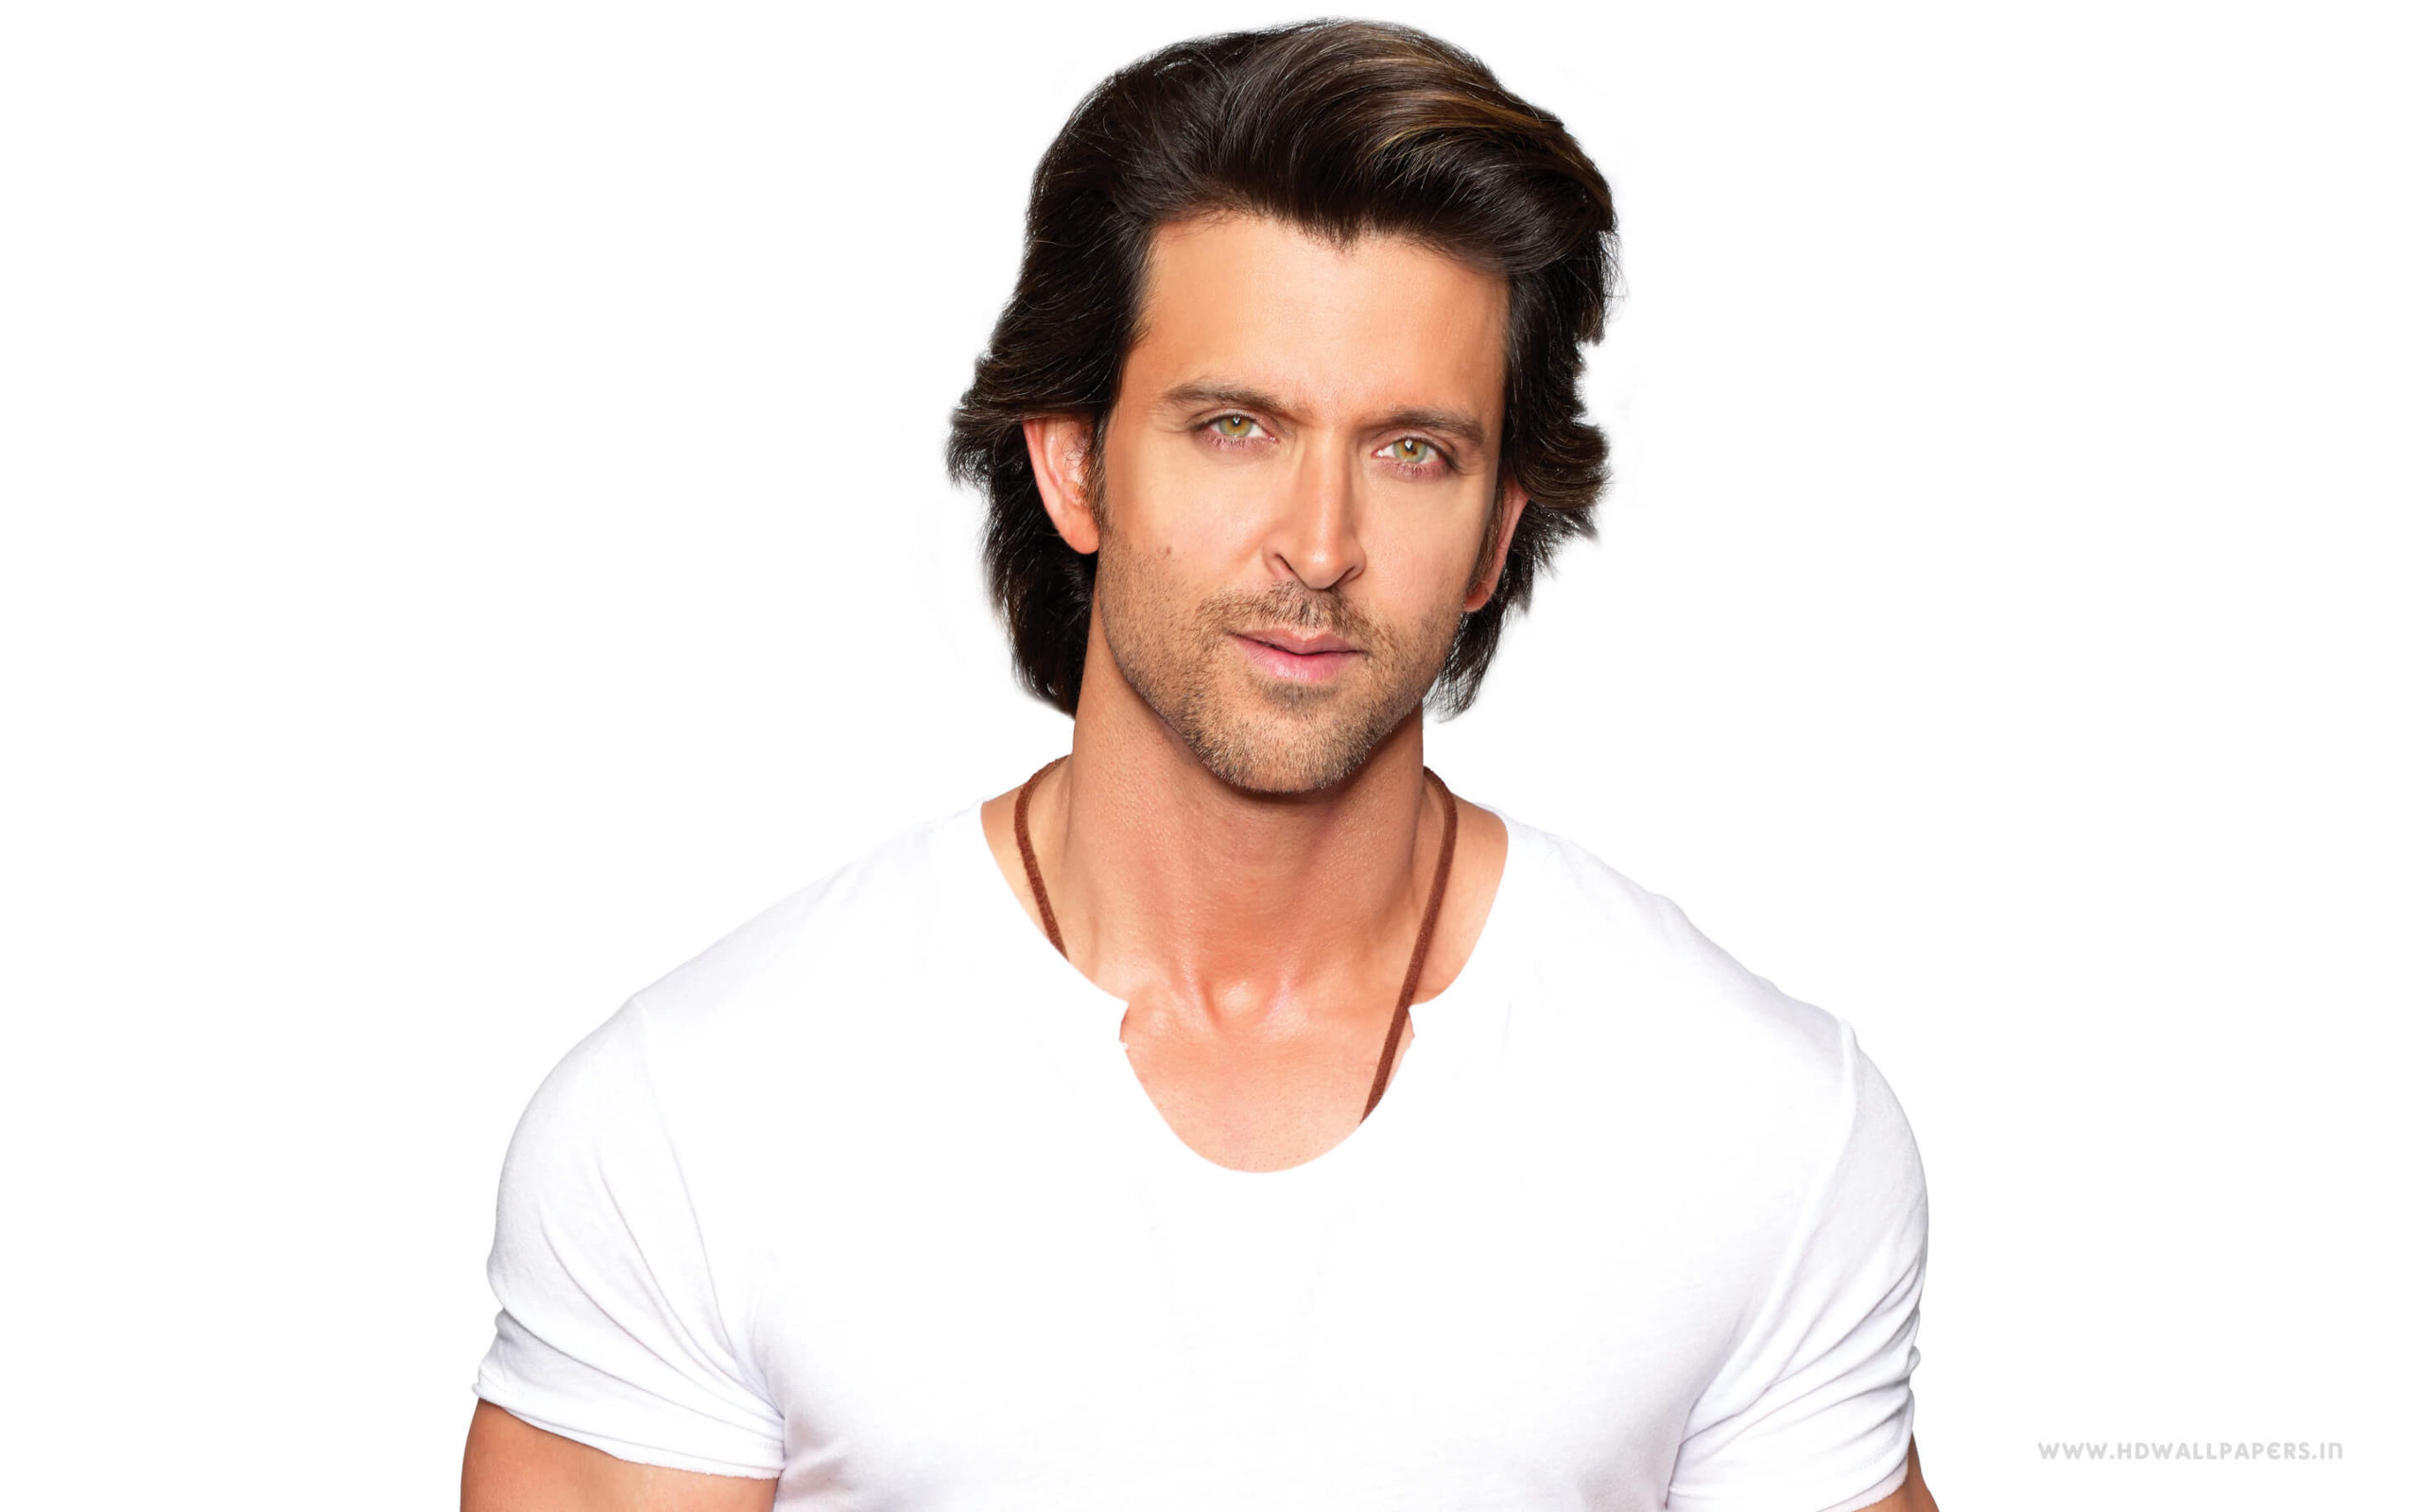 Hrithik Roshan Age, Movie, Height, Wife, Photos(images), Height, News, Dance, Son, Birthday, Family, Biography, Kids, Awards, Education,religion, Instagram, Twitter, Facebook, Wiki, Youtube, ( (143)